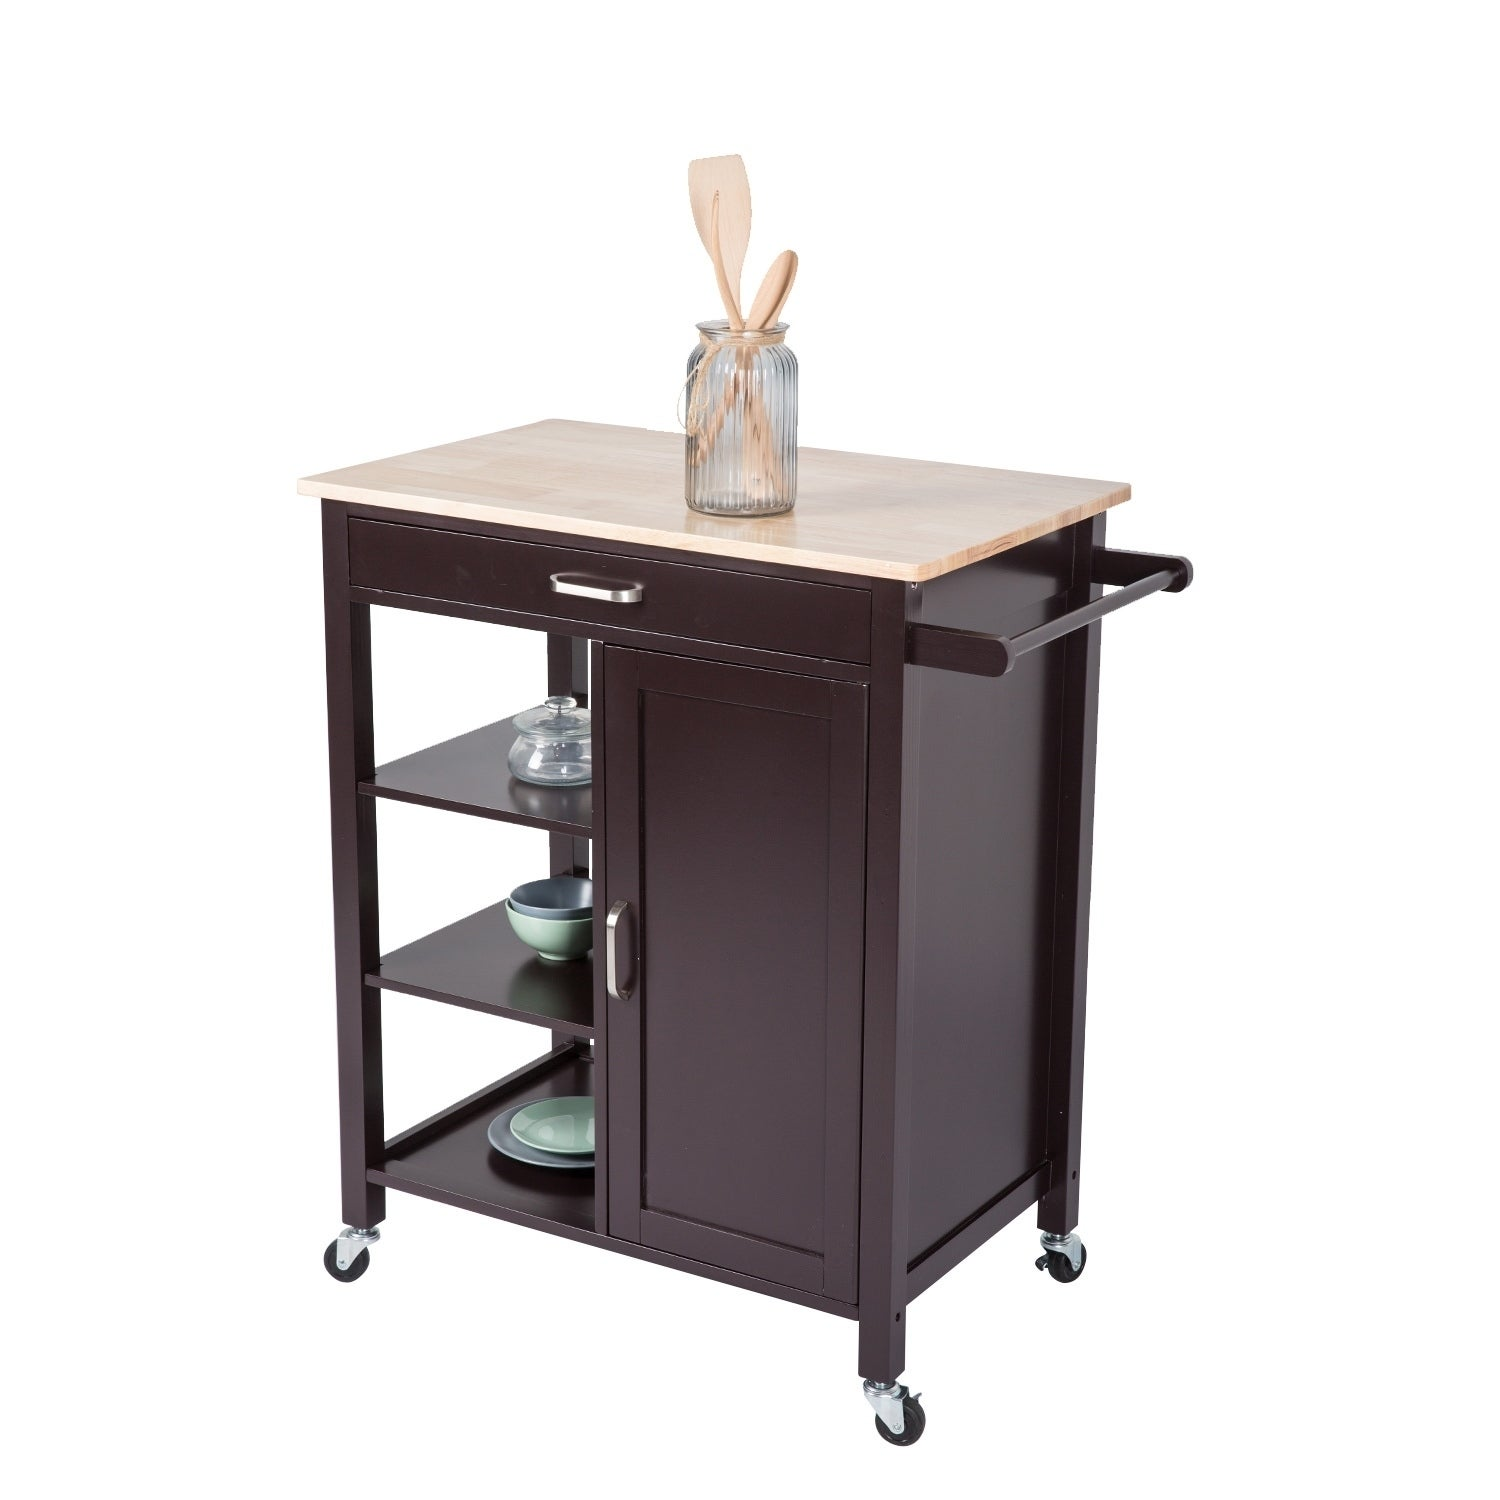 Kinbor Rolling Kitchen Island Utility Kitchen Serving Cart Storage Cabinet Trolley Cart With Wheels